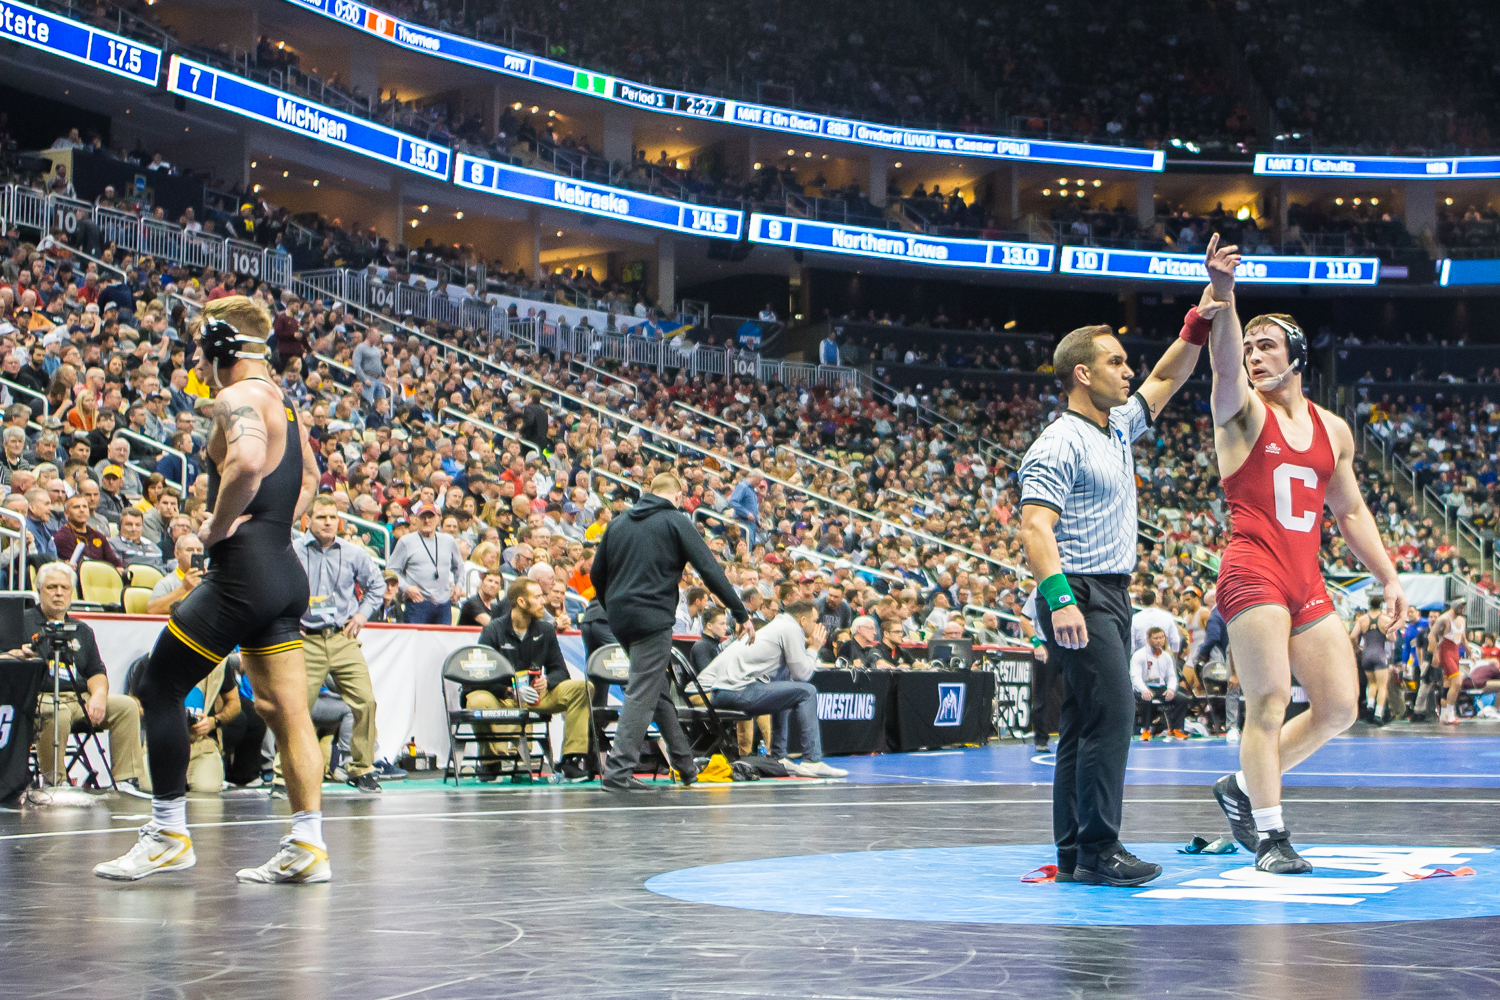 Iowa%E2%80%99s+184-pound+Cash+Wilcke+leaves+the+matt+after+his+bout+with+Cornell%E2%80%99s+Maxwell+Dean+during+the+second+session+of+the+2019+NCAA+D1+Wrestling+Championships+at+PPG+Paints+Arena+in+Pittsburgh%2C+PA+on+Thursday%2C+March+21%2C+2019.+Dean+won+by+sudden+victory%2C+6-4.+Wilcke%27s+loss++was+Iowa%27s+first+of+the+tournament.